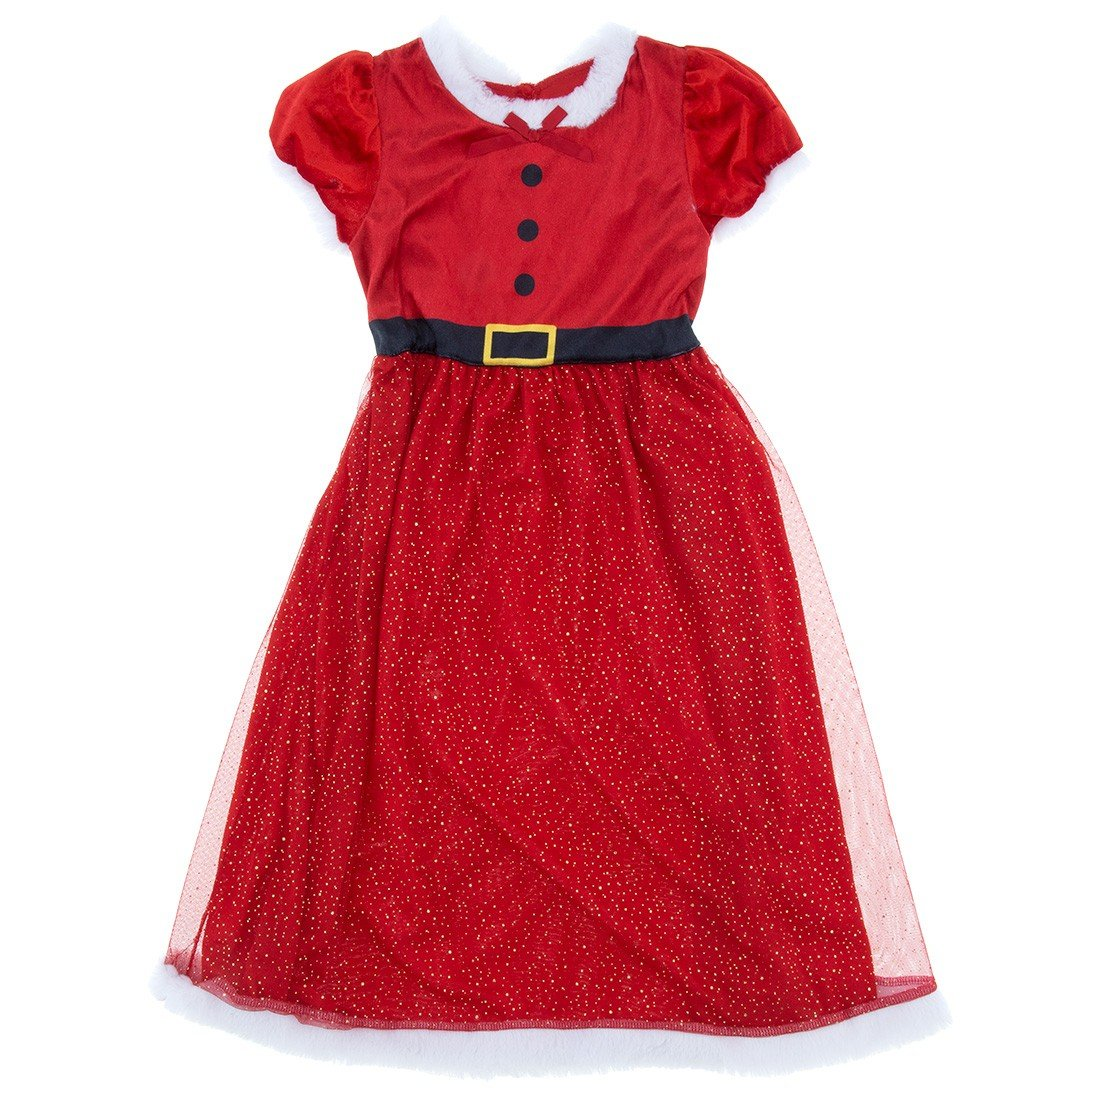 Komar Kids Little Girls' Miss Santa Red Holiday Nightgown